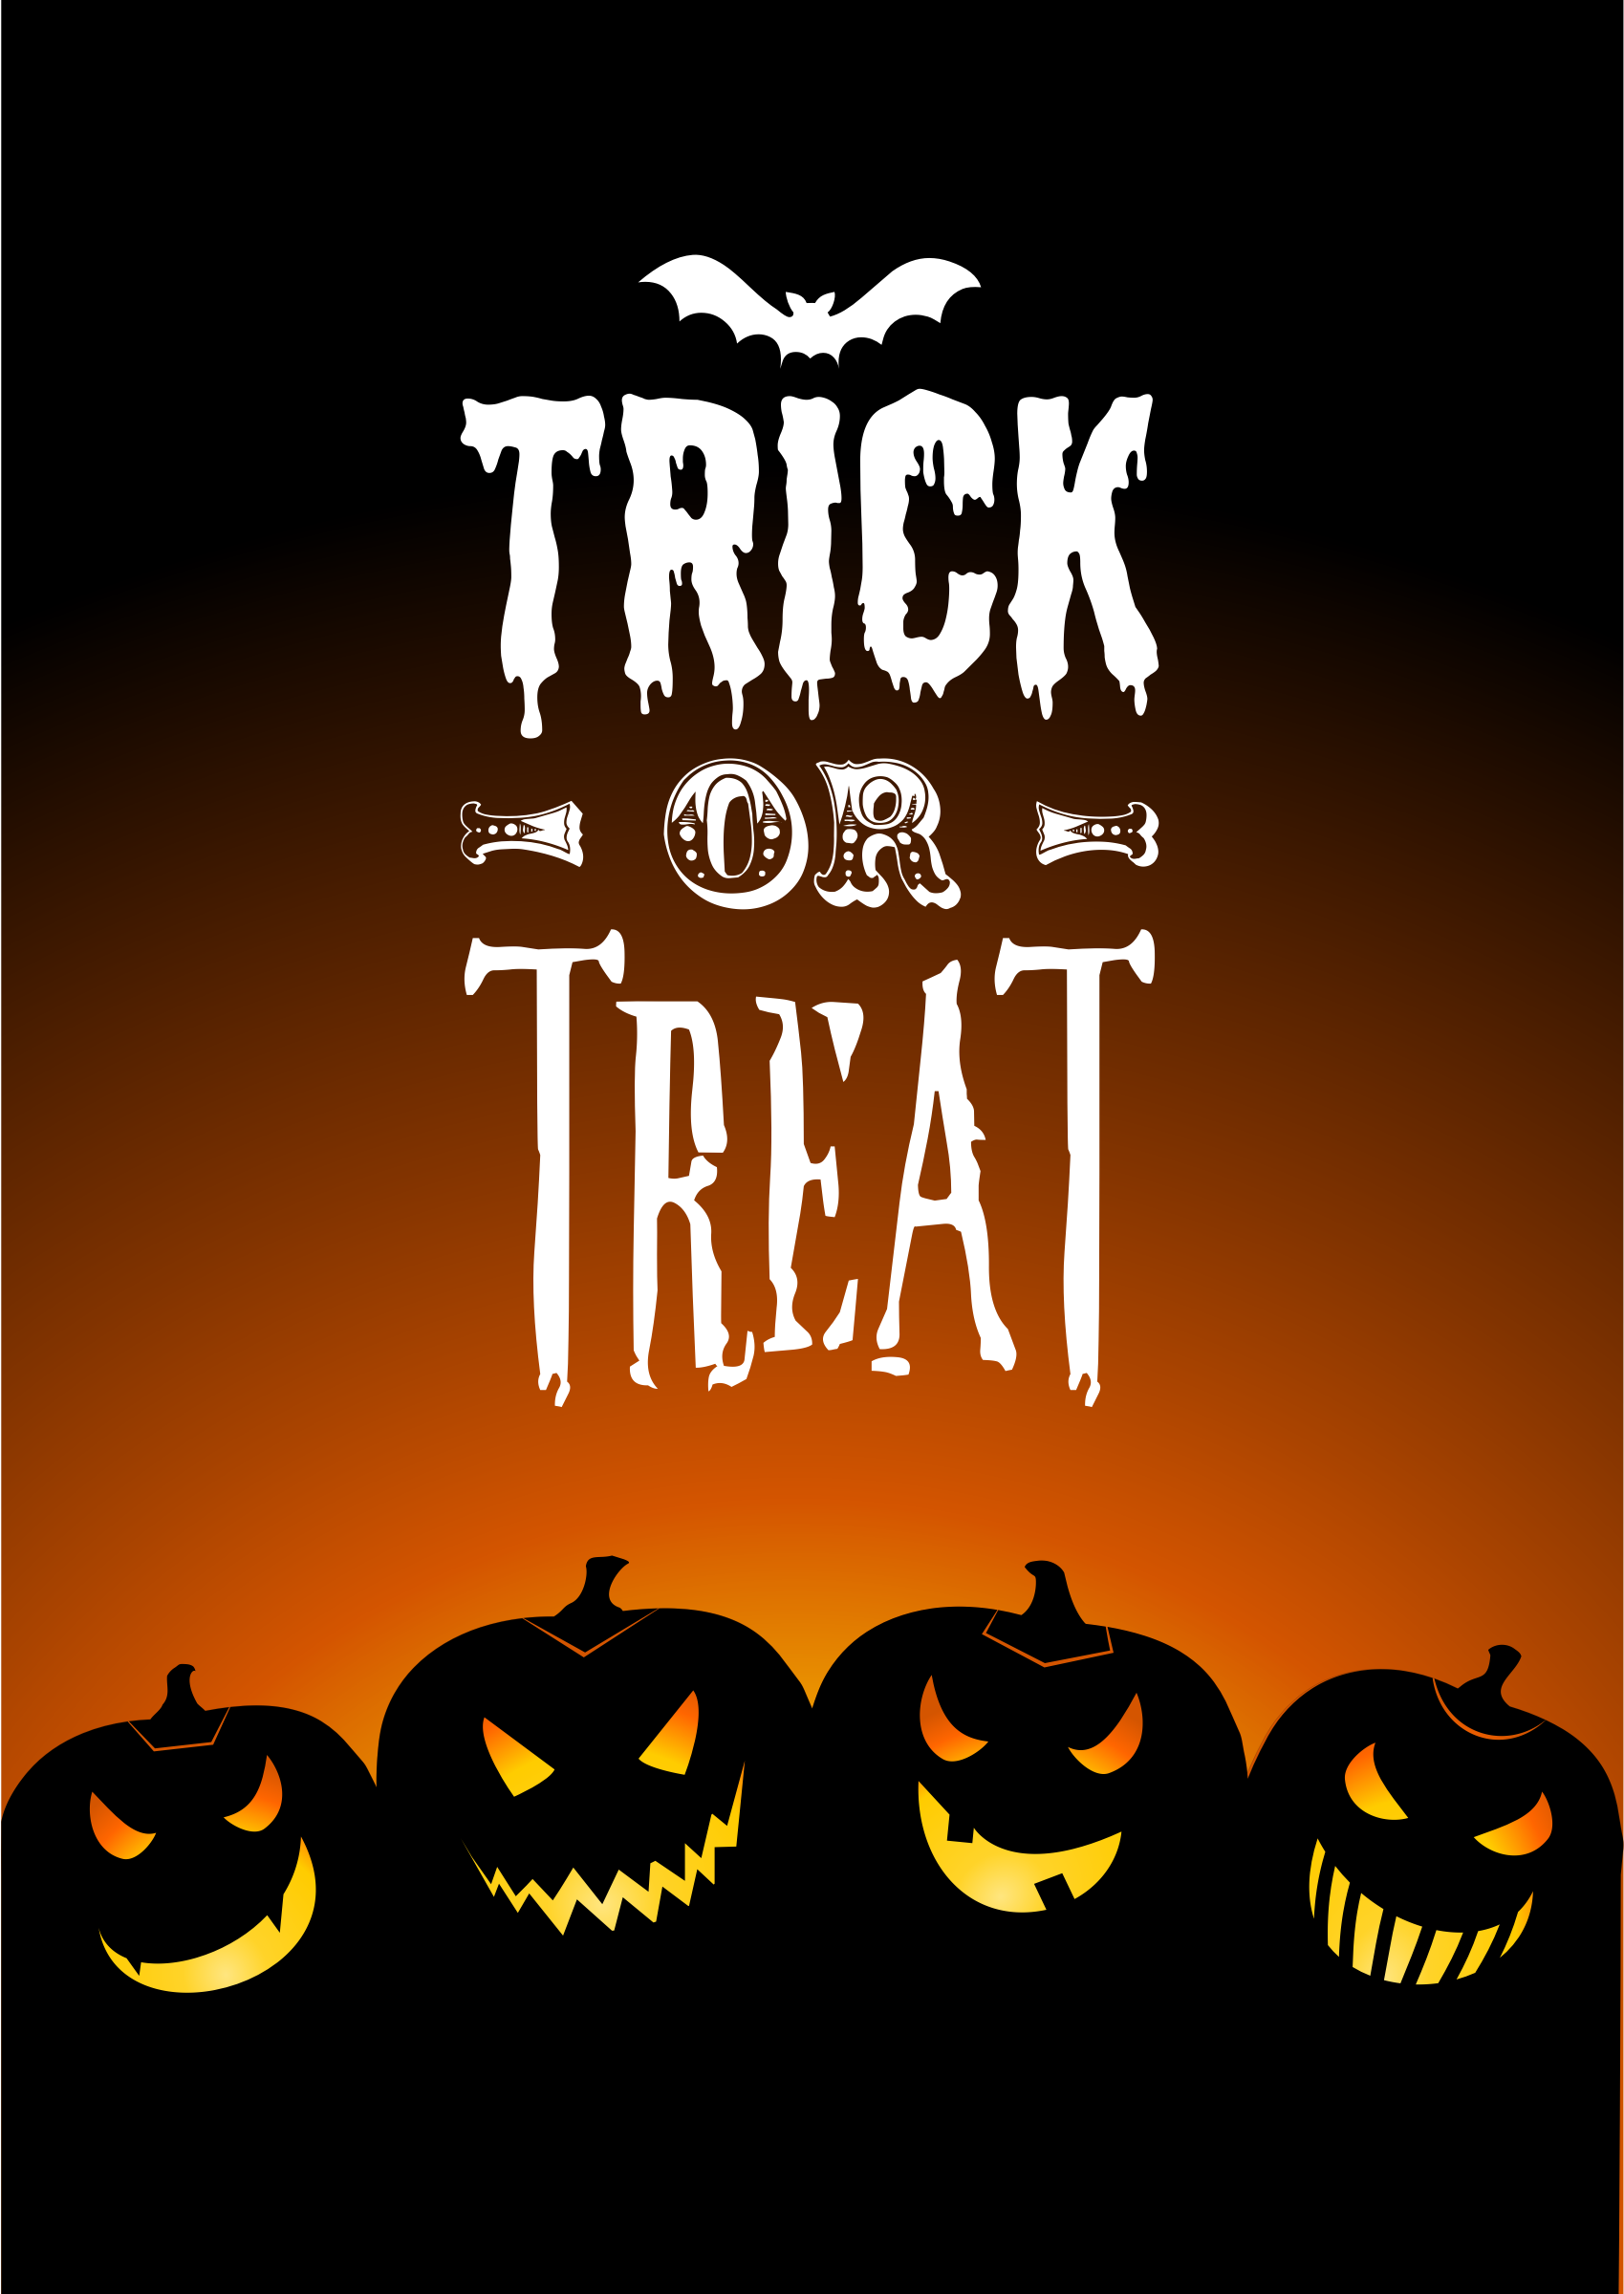 Trick or Treat with Jack-o-lanterns Card by uroesch